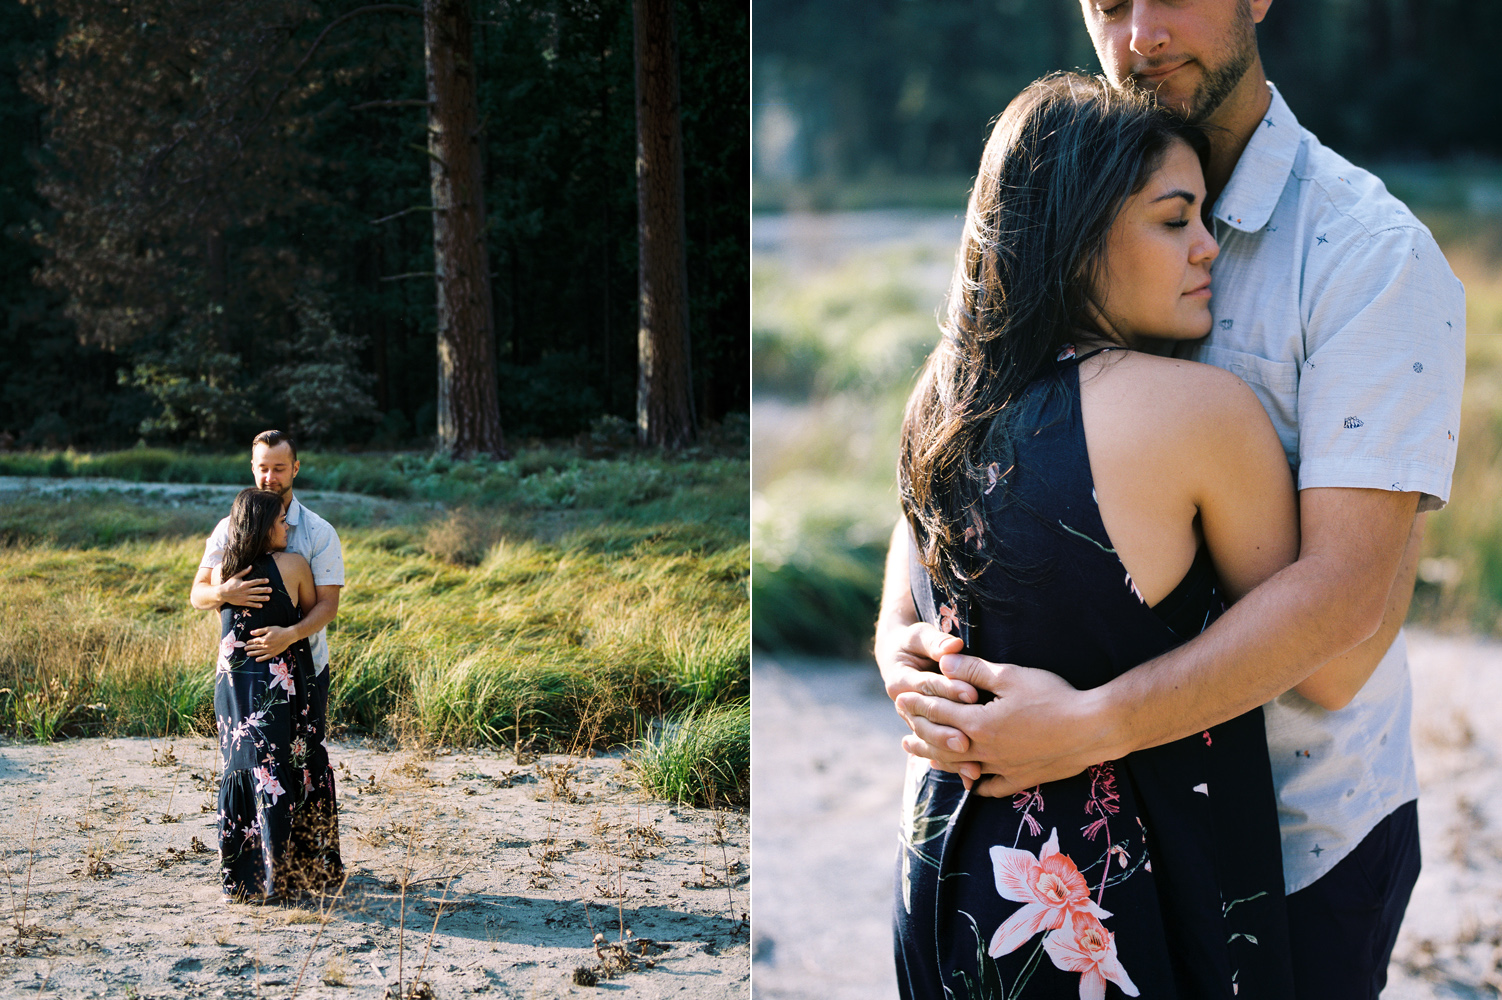 yosemite valley engagement photography.jpg